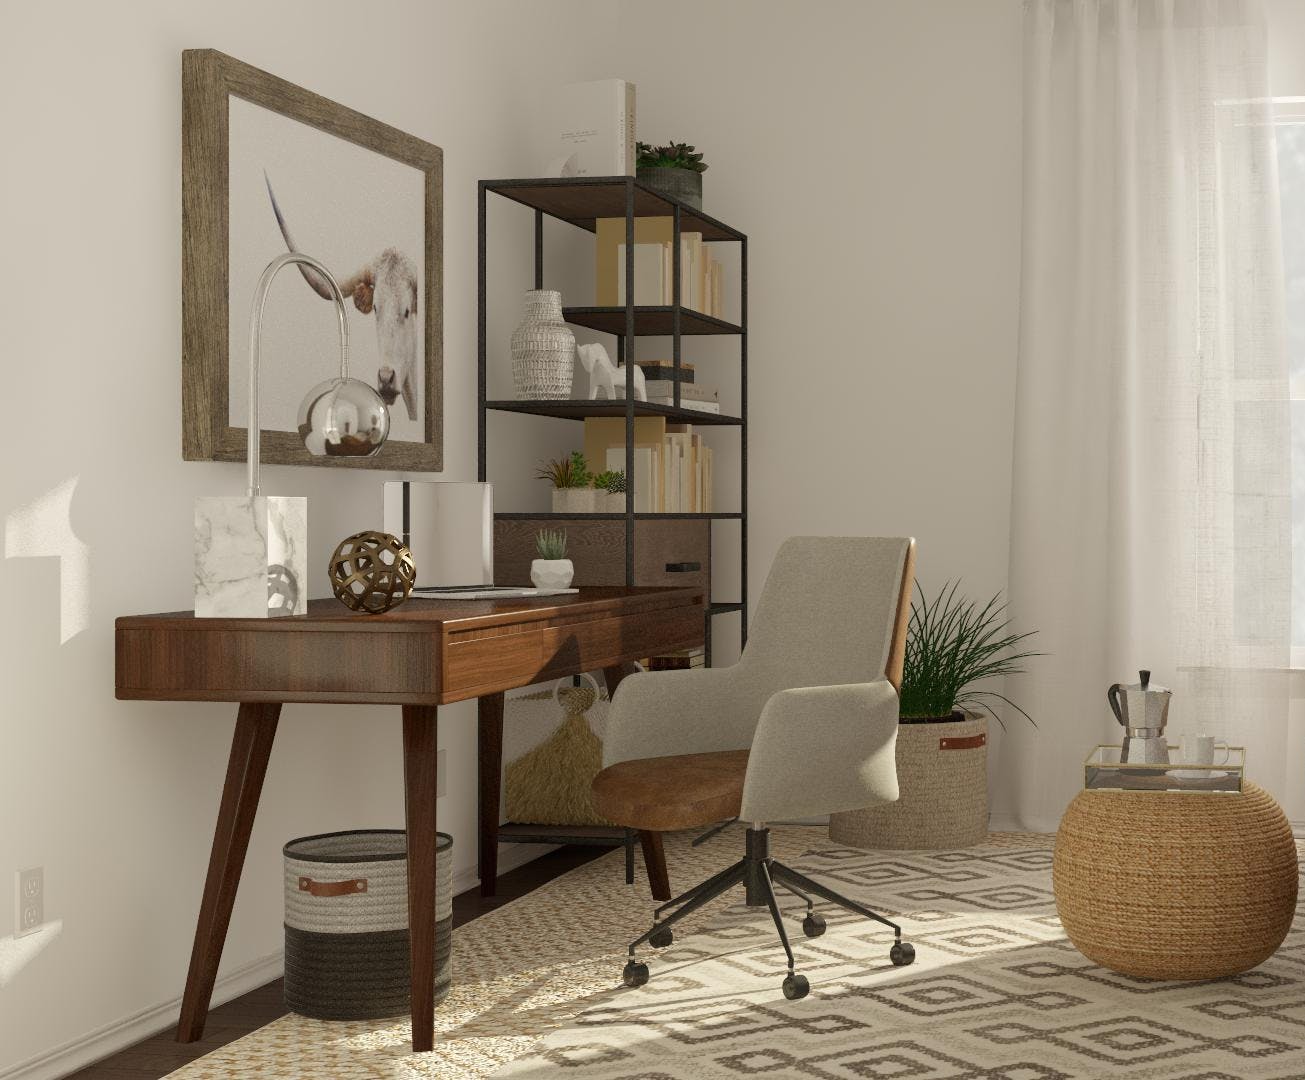 20 Modern Office Chairs For A Comfortable Home Office modern office chairs 20 Modern Office Chairs For A Comfortable Home Office 20 Modern Office Chairs For A Comfortable Home Office 12